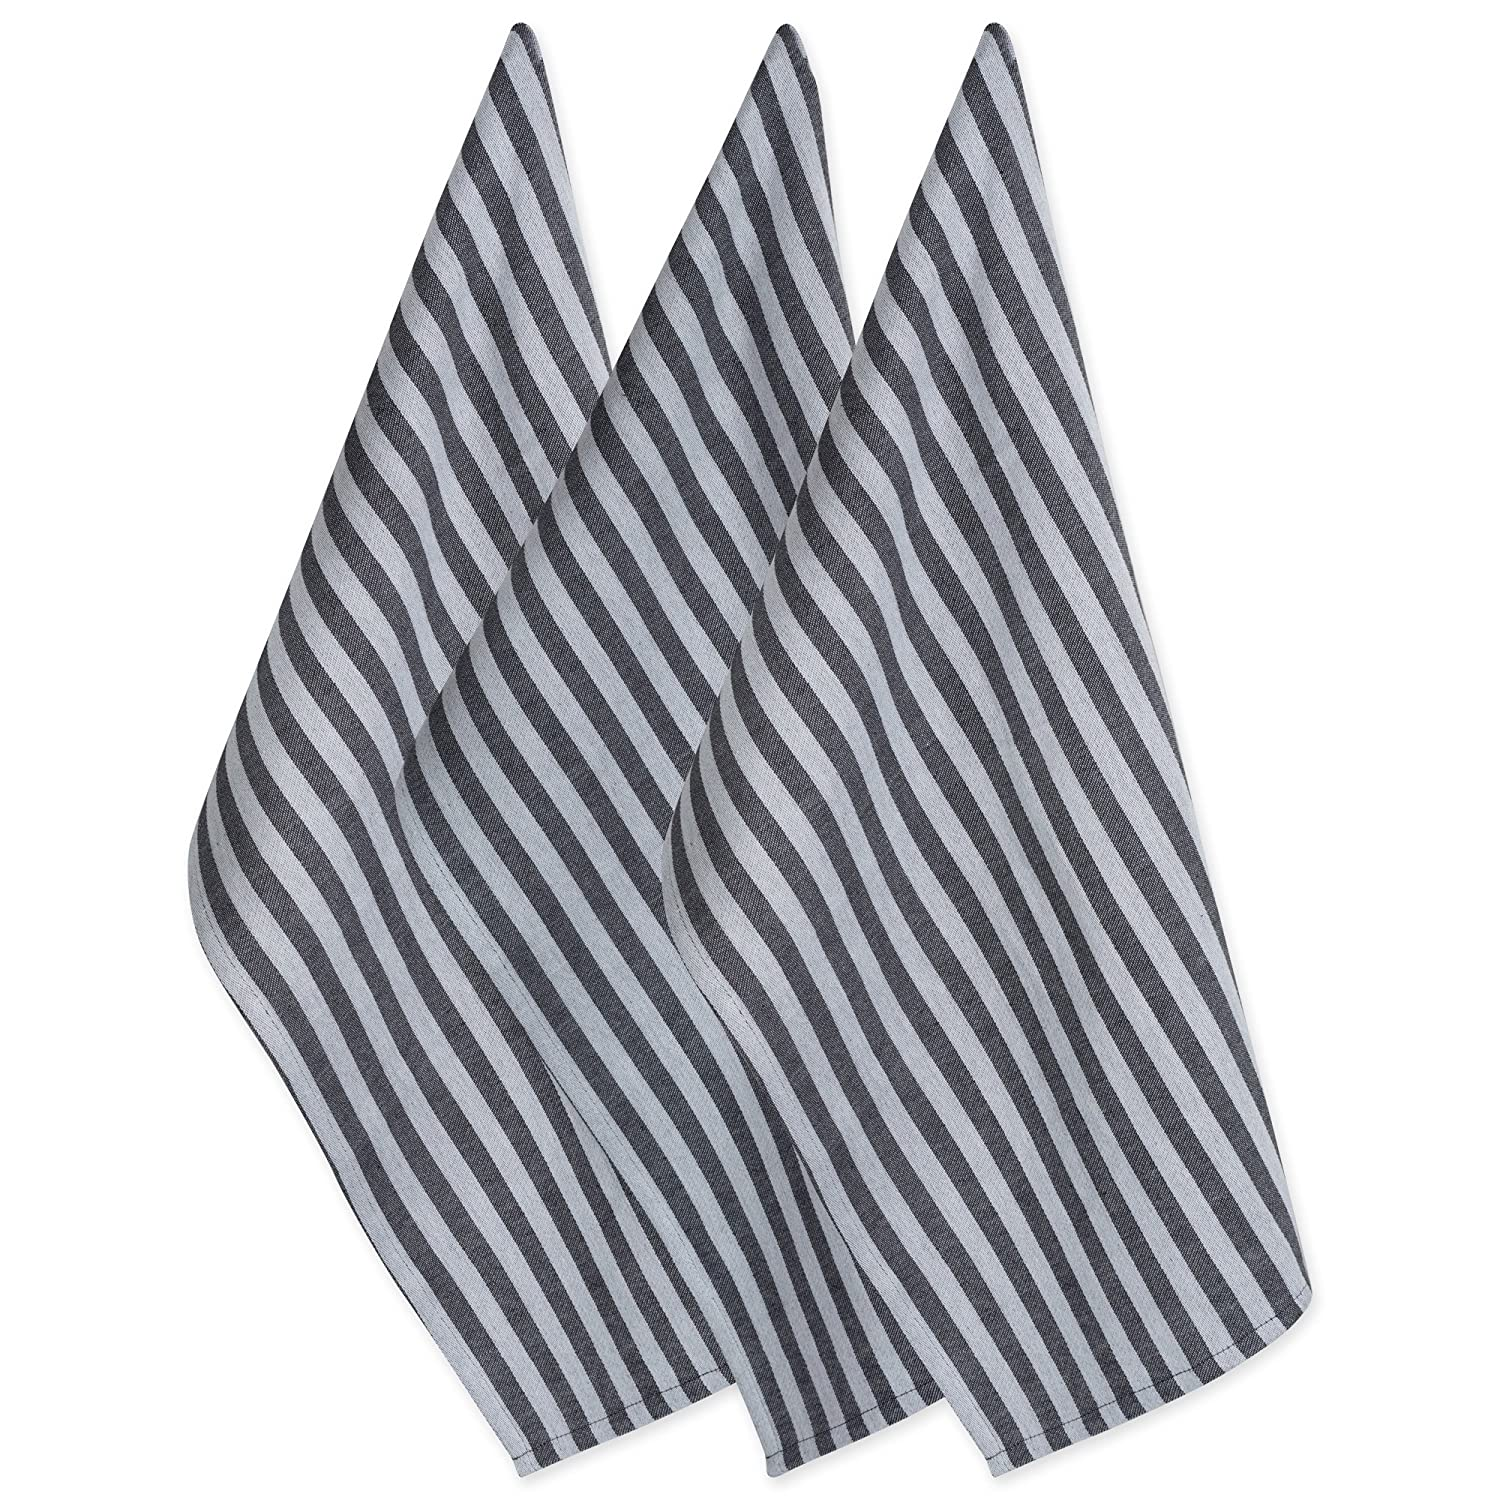 DII Cotton Decorative Farmhouse Chic Geometric Dish Towels Oversized Kitchen Perfect Mother's Day, Hostess, Housewarming Gift, (18x28-Set of 3), Stripe